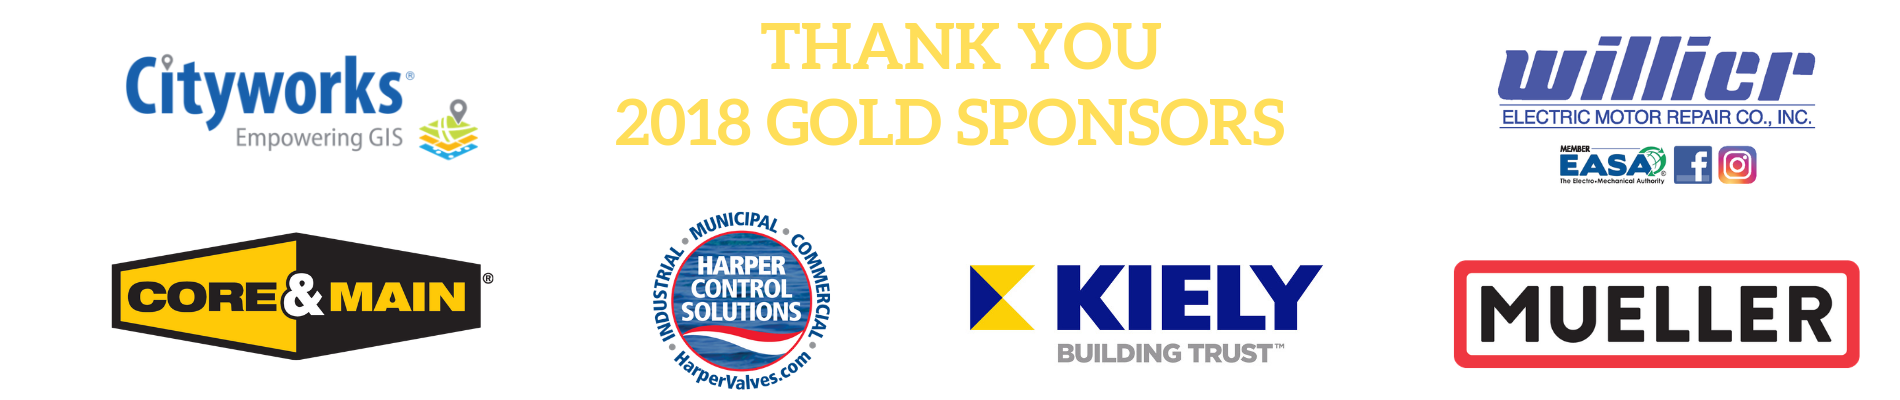 Thank You Gold Sponsors